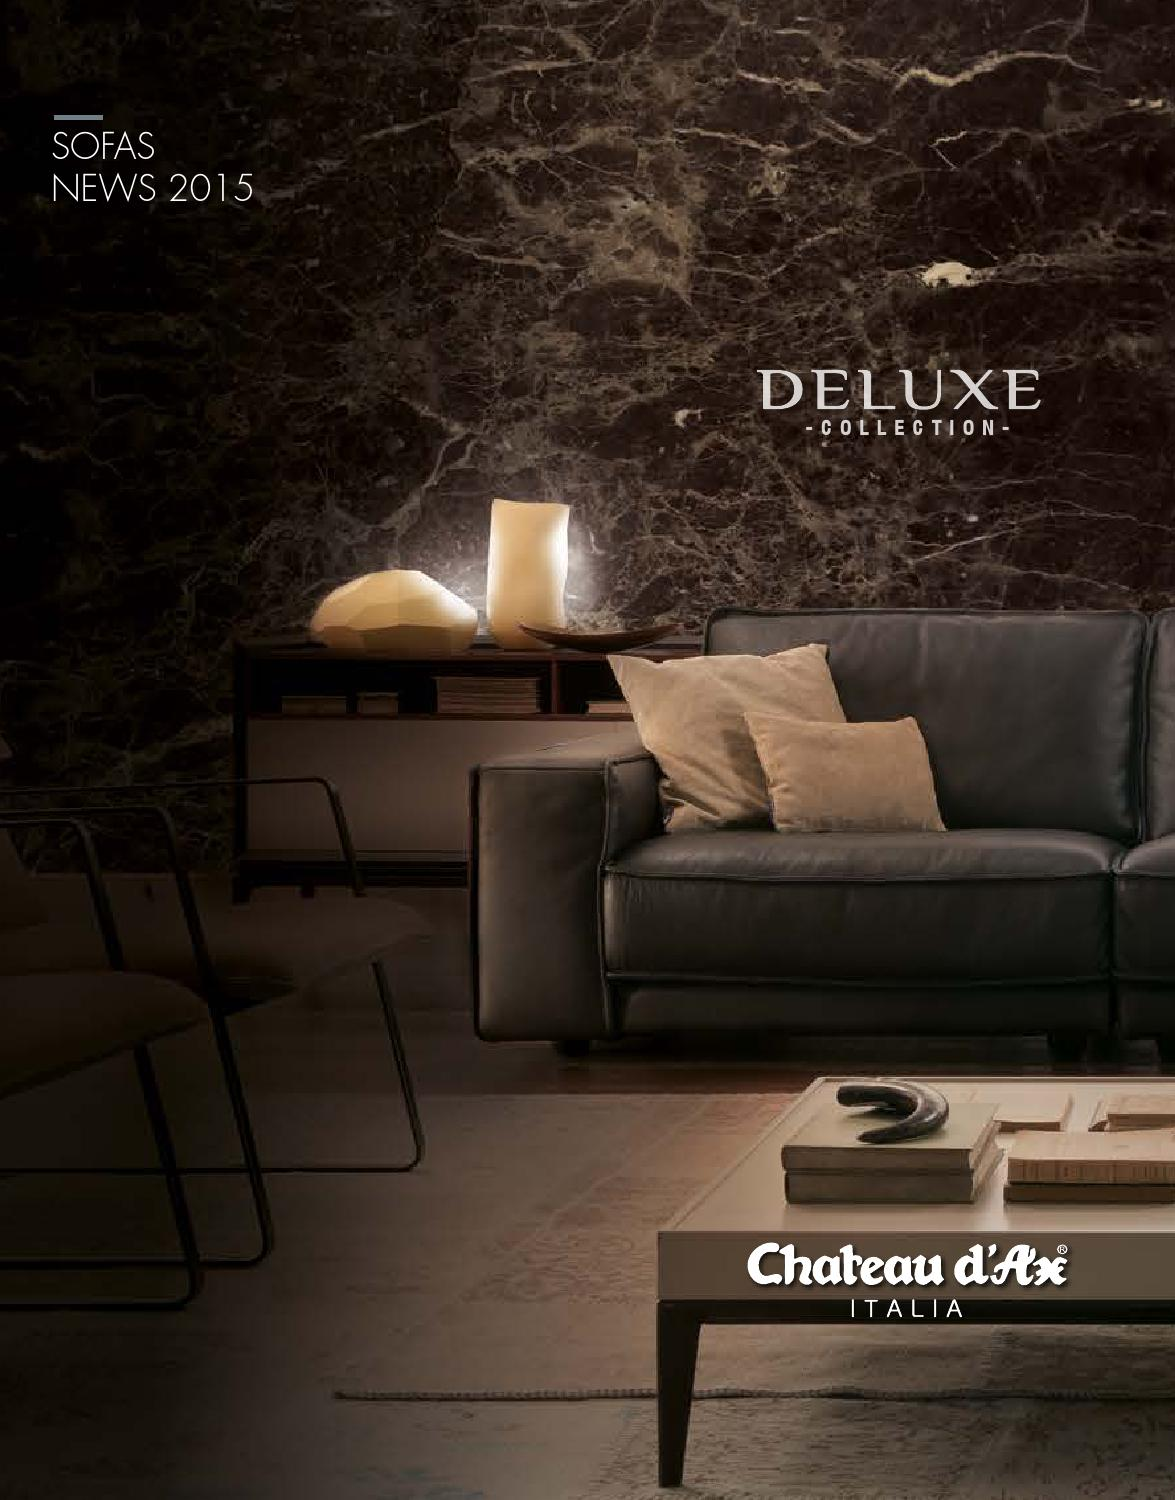 Seats And Sofas Genk Chateau D Ax Deluxe Collection Cat Sofas Update 2015 By